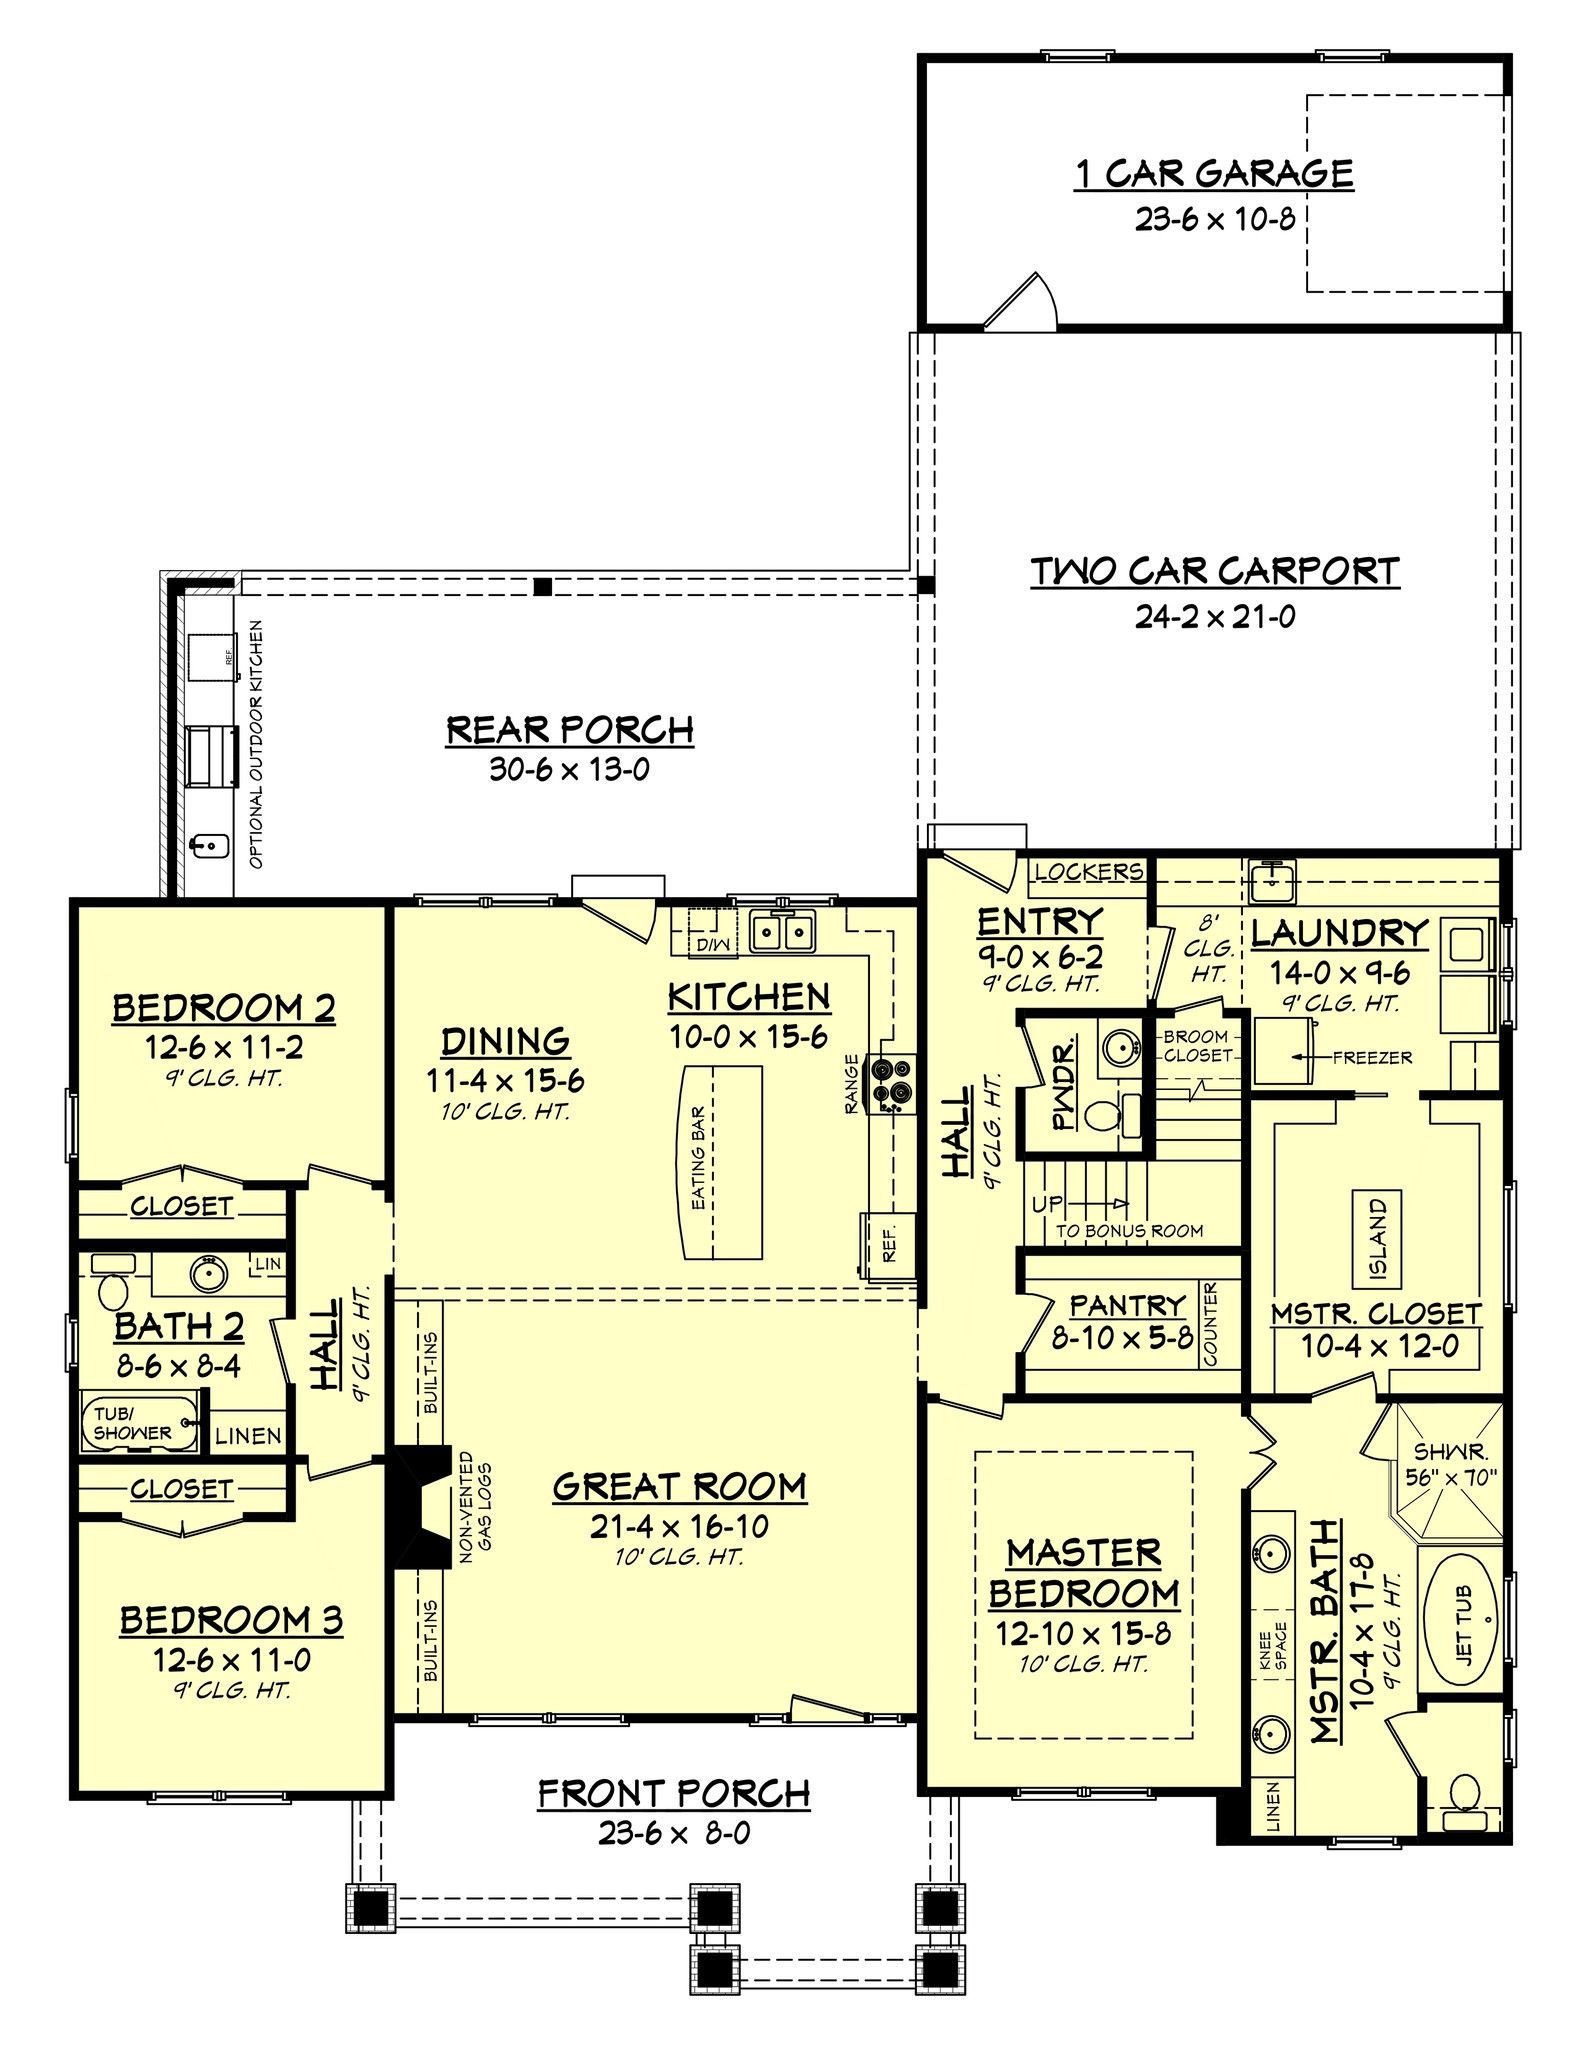 This Wonderful 3 Bedroom 2 Bath House Plan Is Loaded With Features And Style It Of Craftsman Style House Plans Country House Plans Barndominium Floor Plans